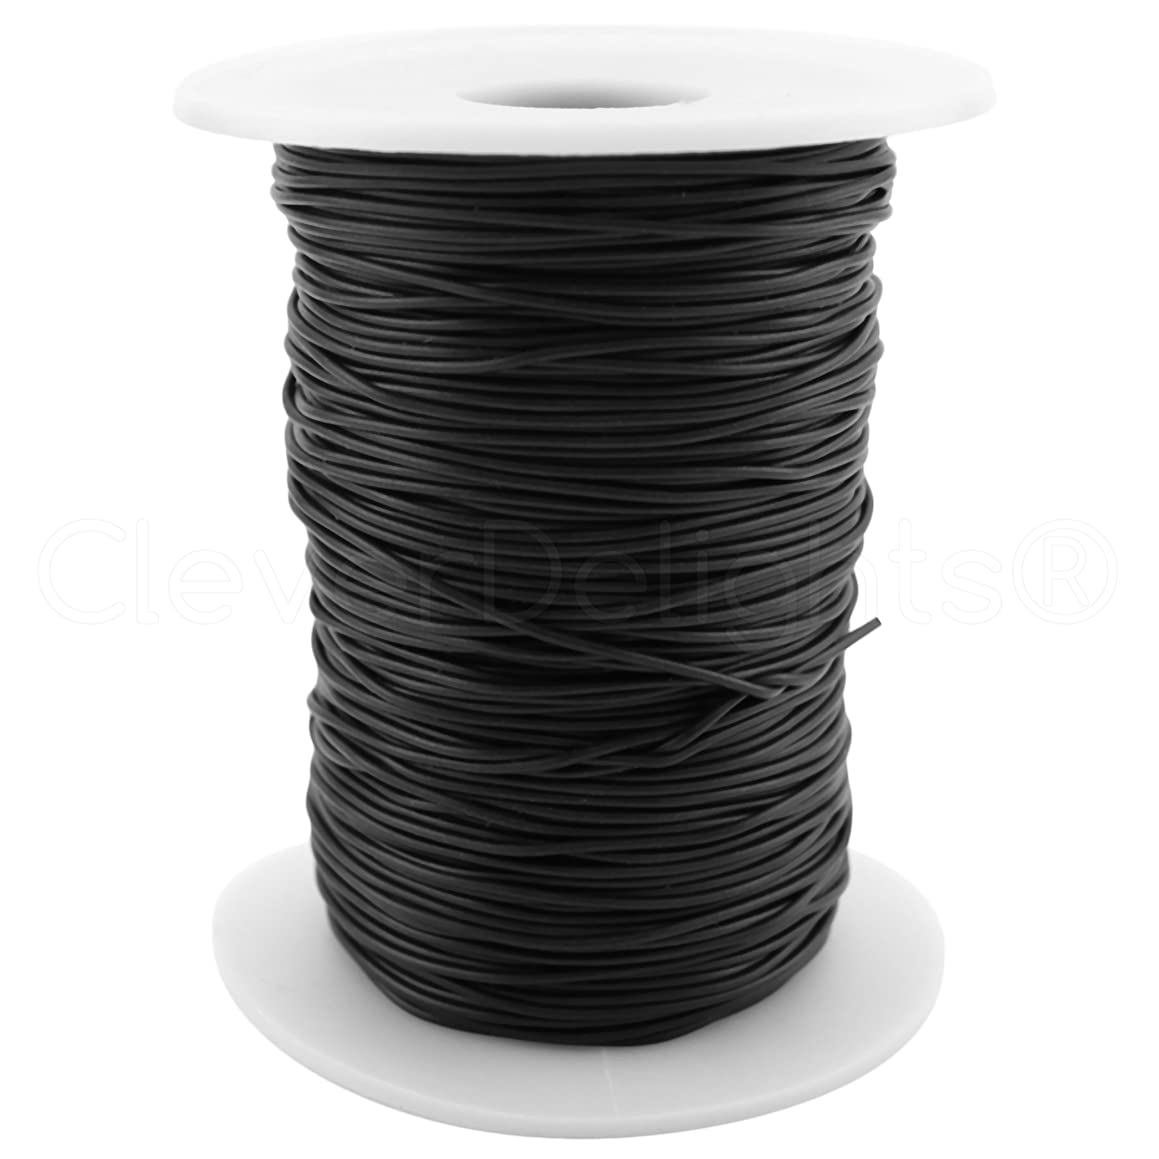 CleverDelights Black Solid Rubber Cord - 50 Yards (150 Feet) - 1mm (1/32